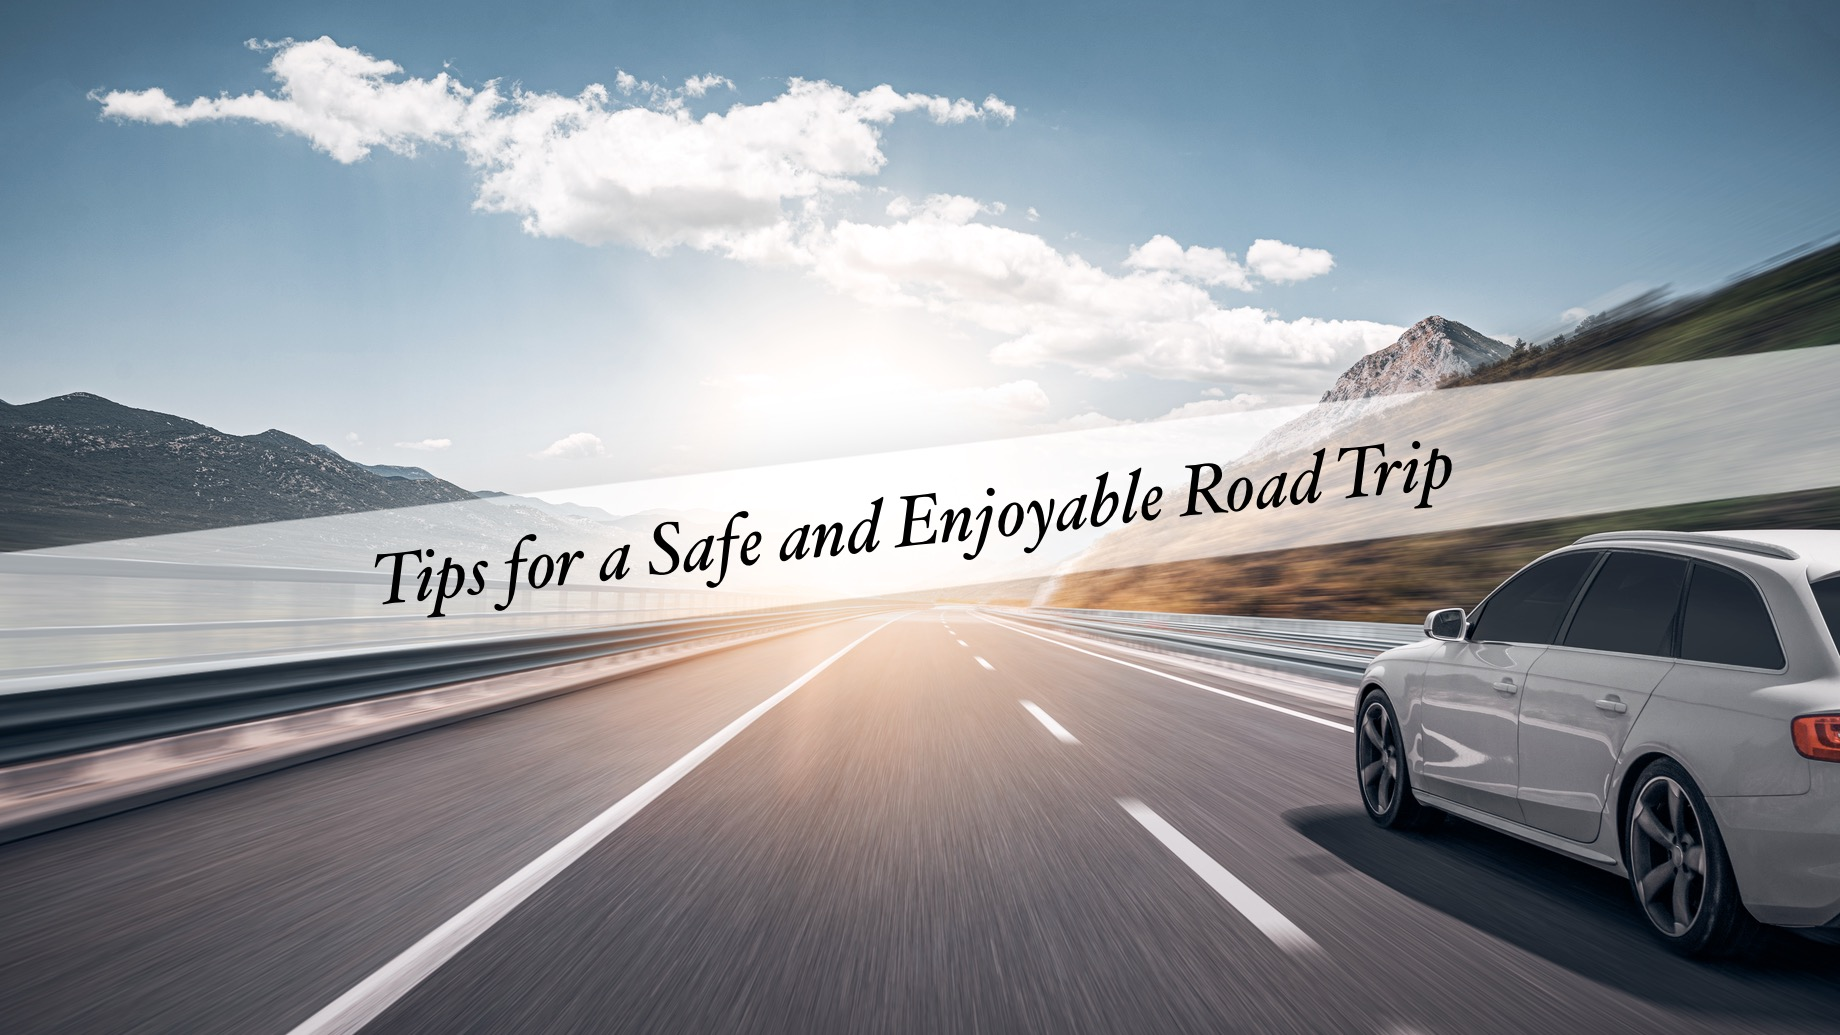 Tips for a Safe and Enjoyable Road Trip